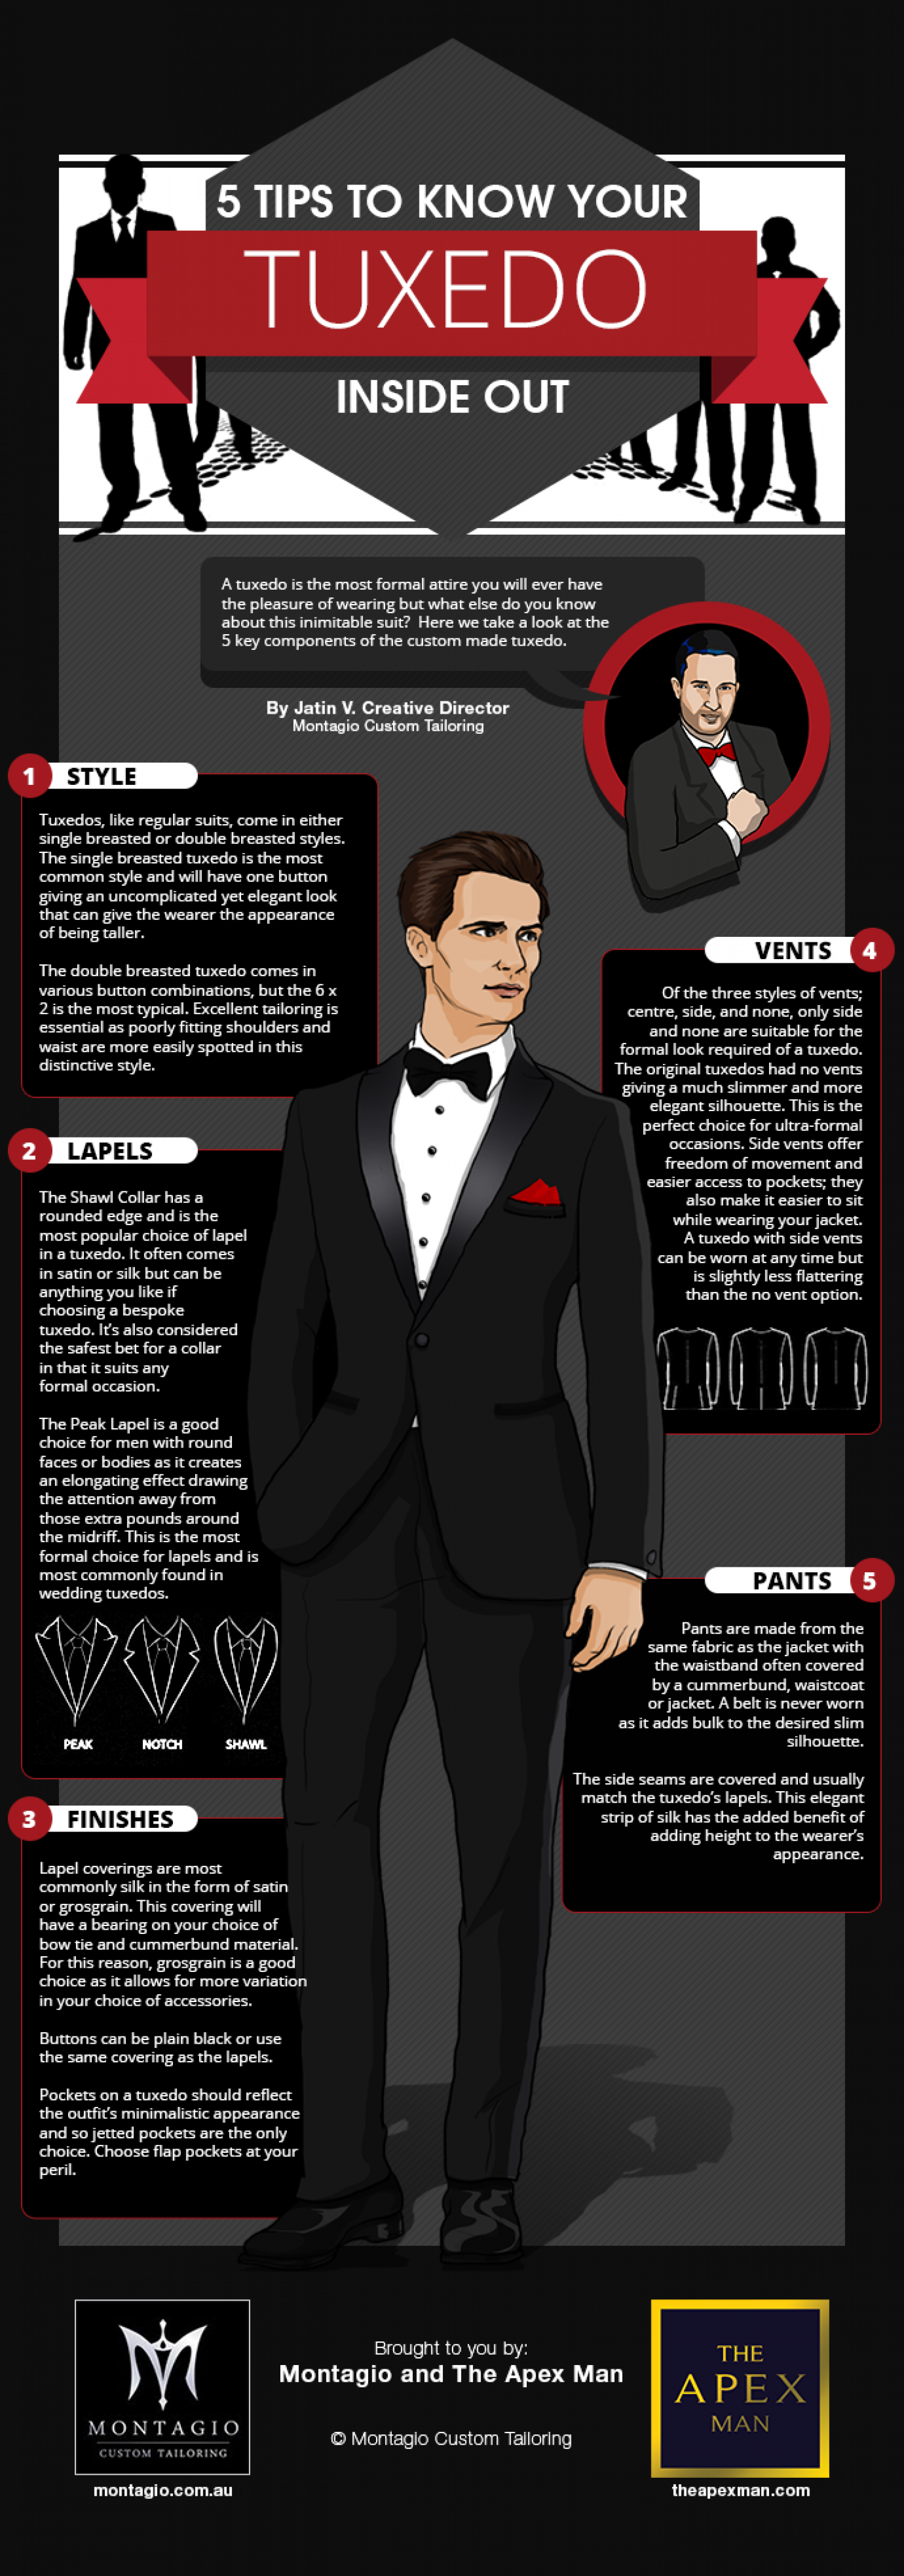 5 Tips to Know Your Tuxedo Inside Out Infographic